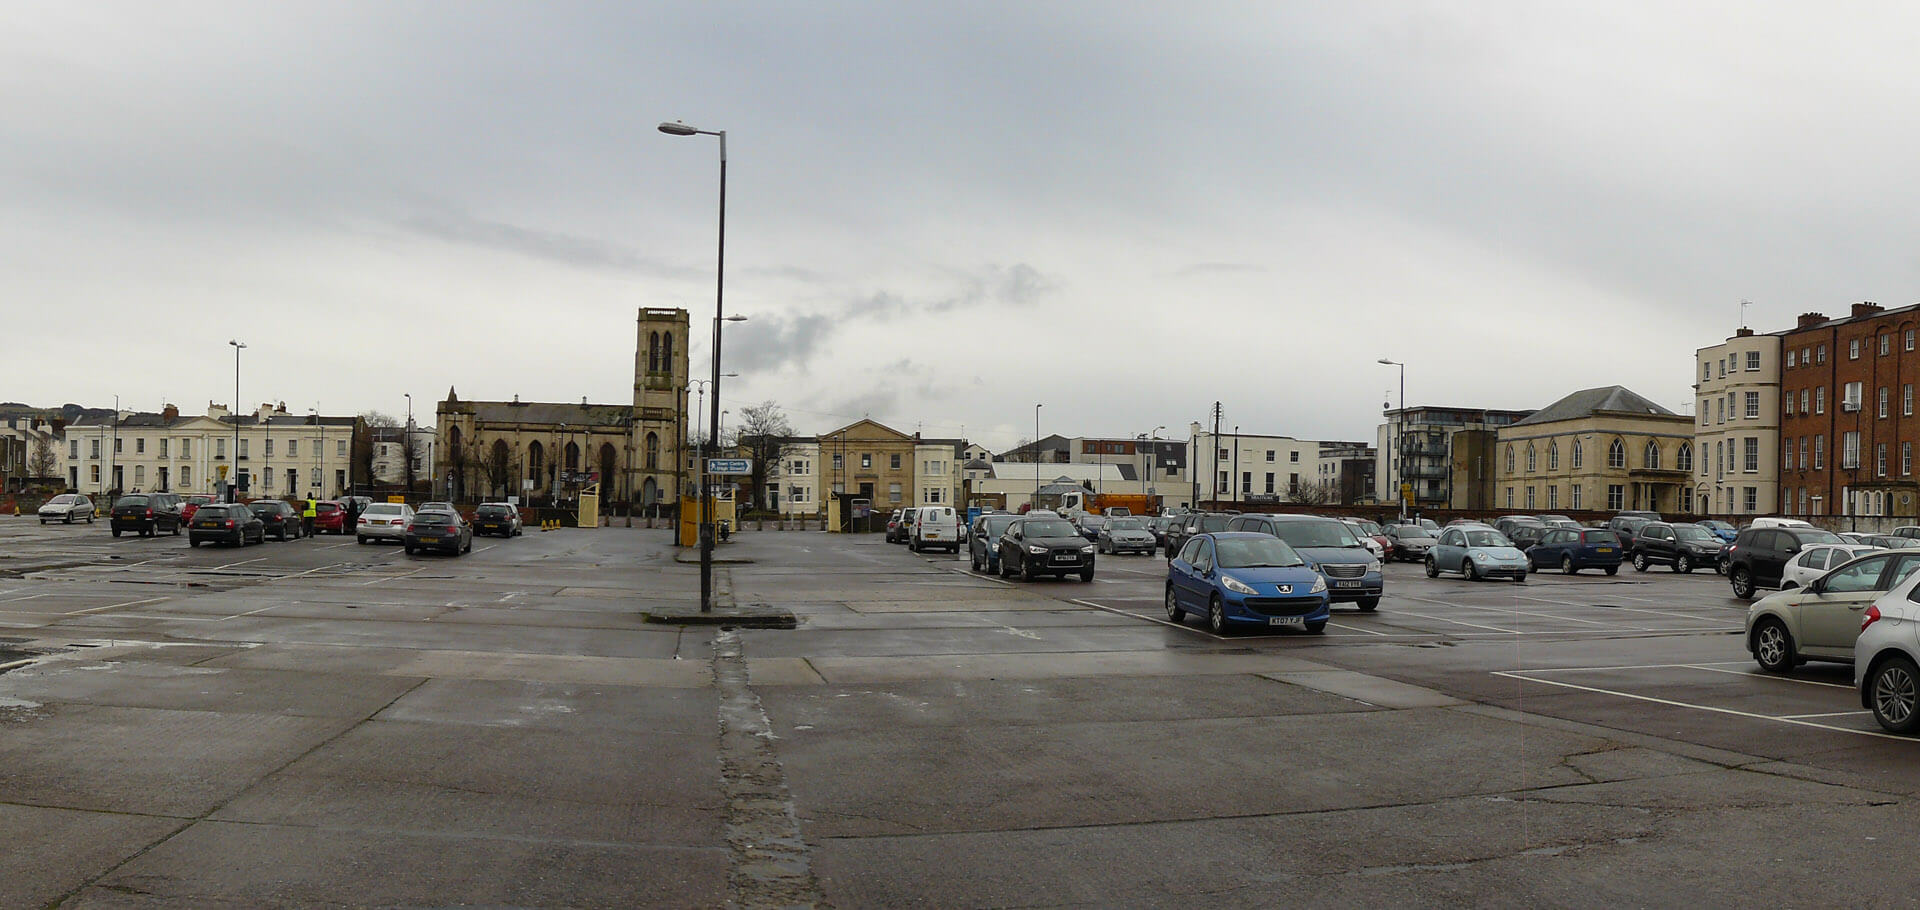 A thriving urban transport hub in Cheltenham